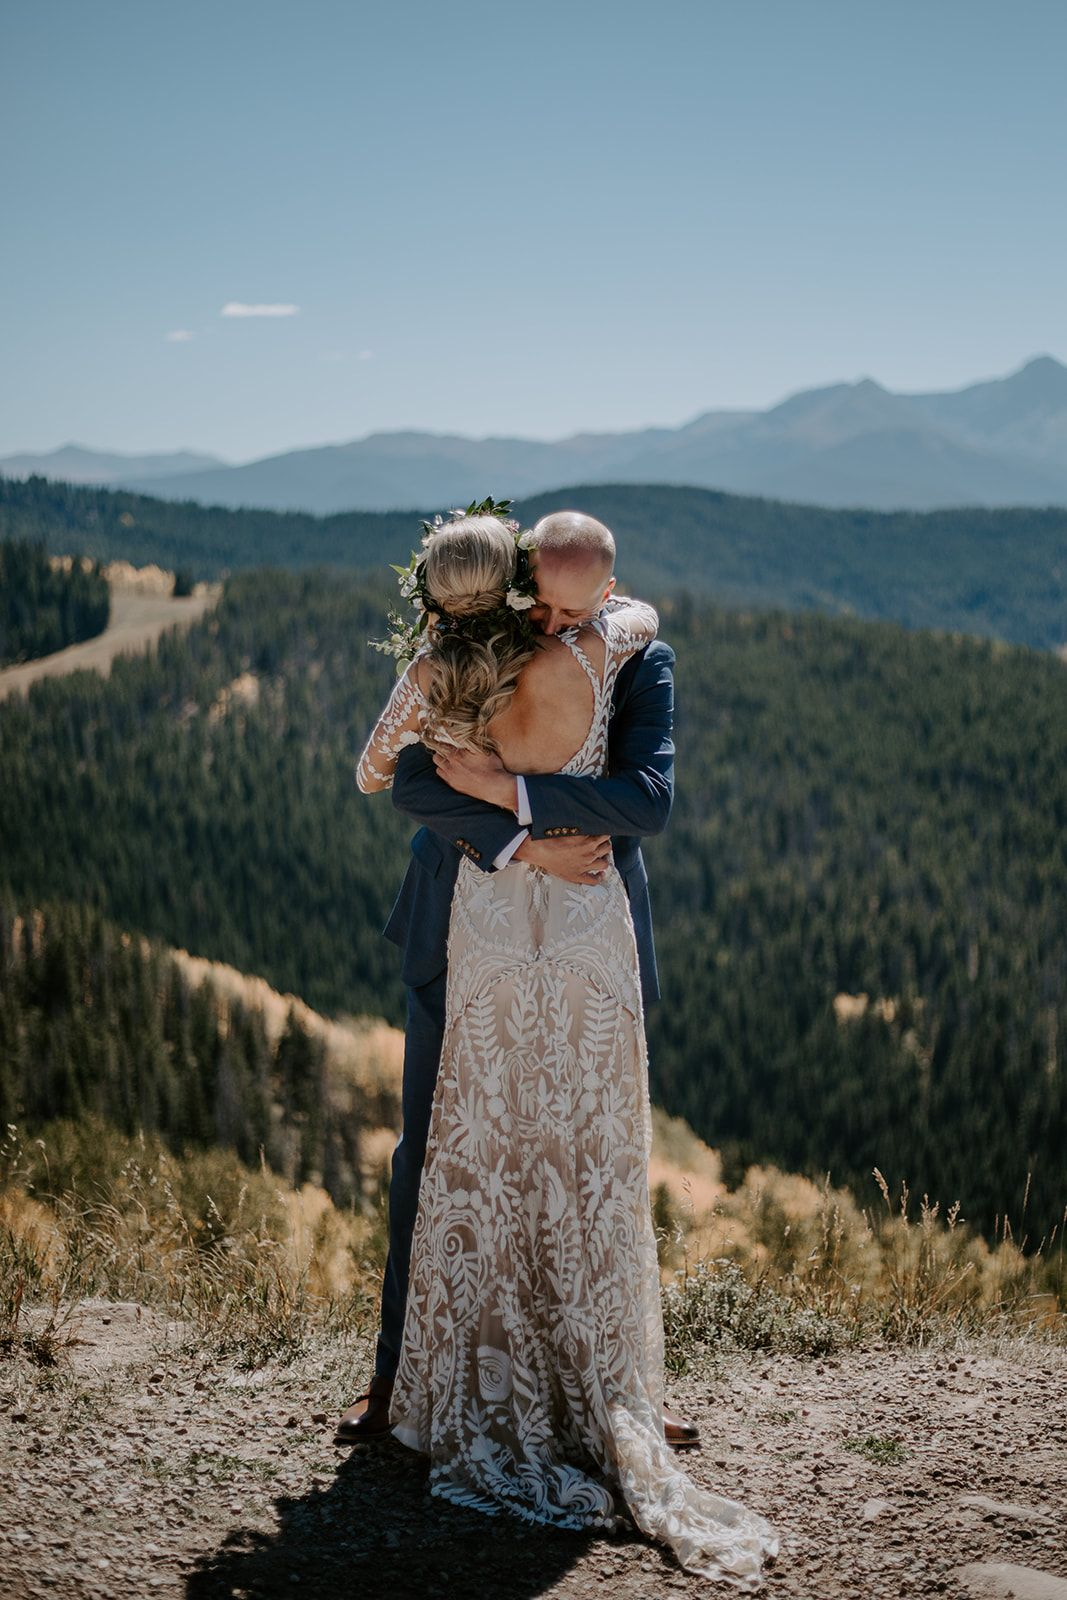 Bohemian Mountaintop Wedding Ceremony In Vail Colorado Real Wedding Mountain Top Wedding Mountain Bride Wedding Ceremony